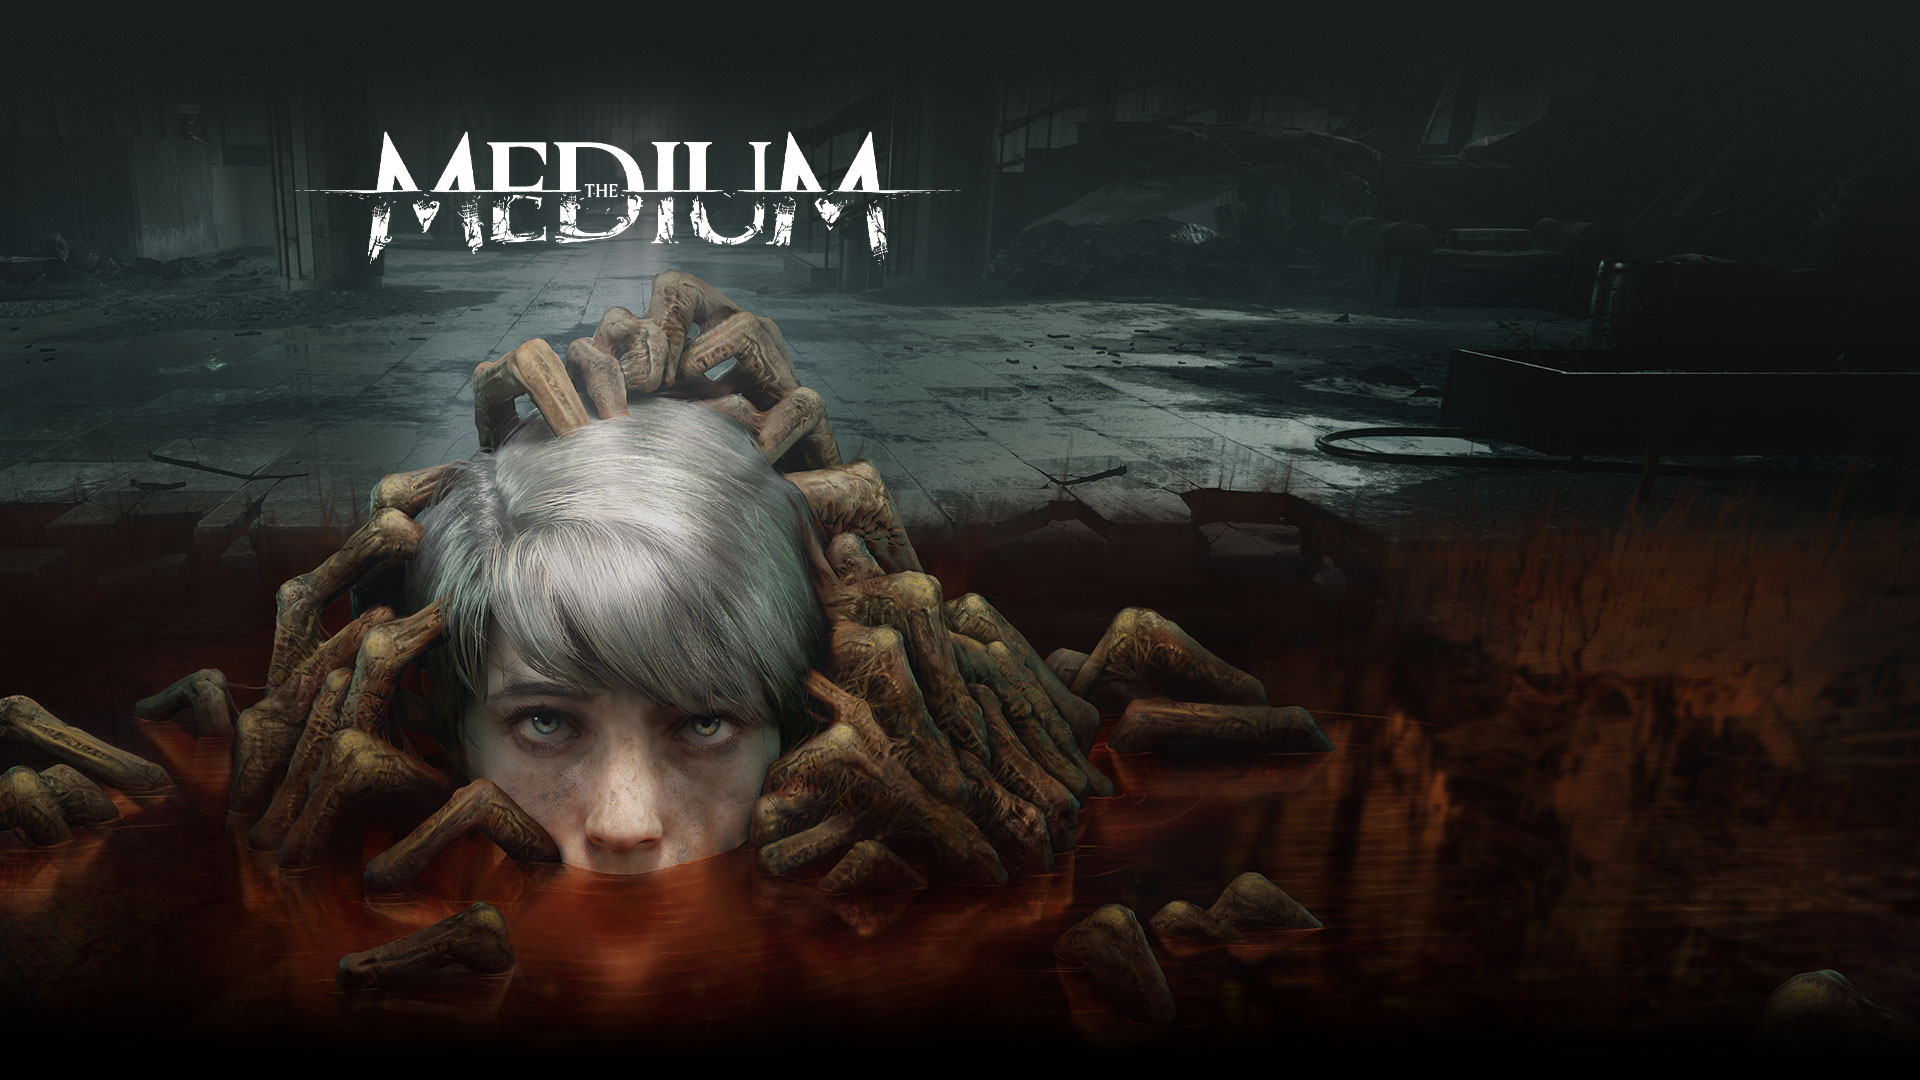 The Medium, a child's head rises from a puddle filled with undead hands.